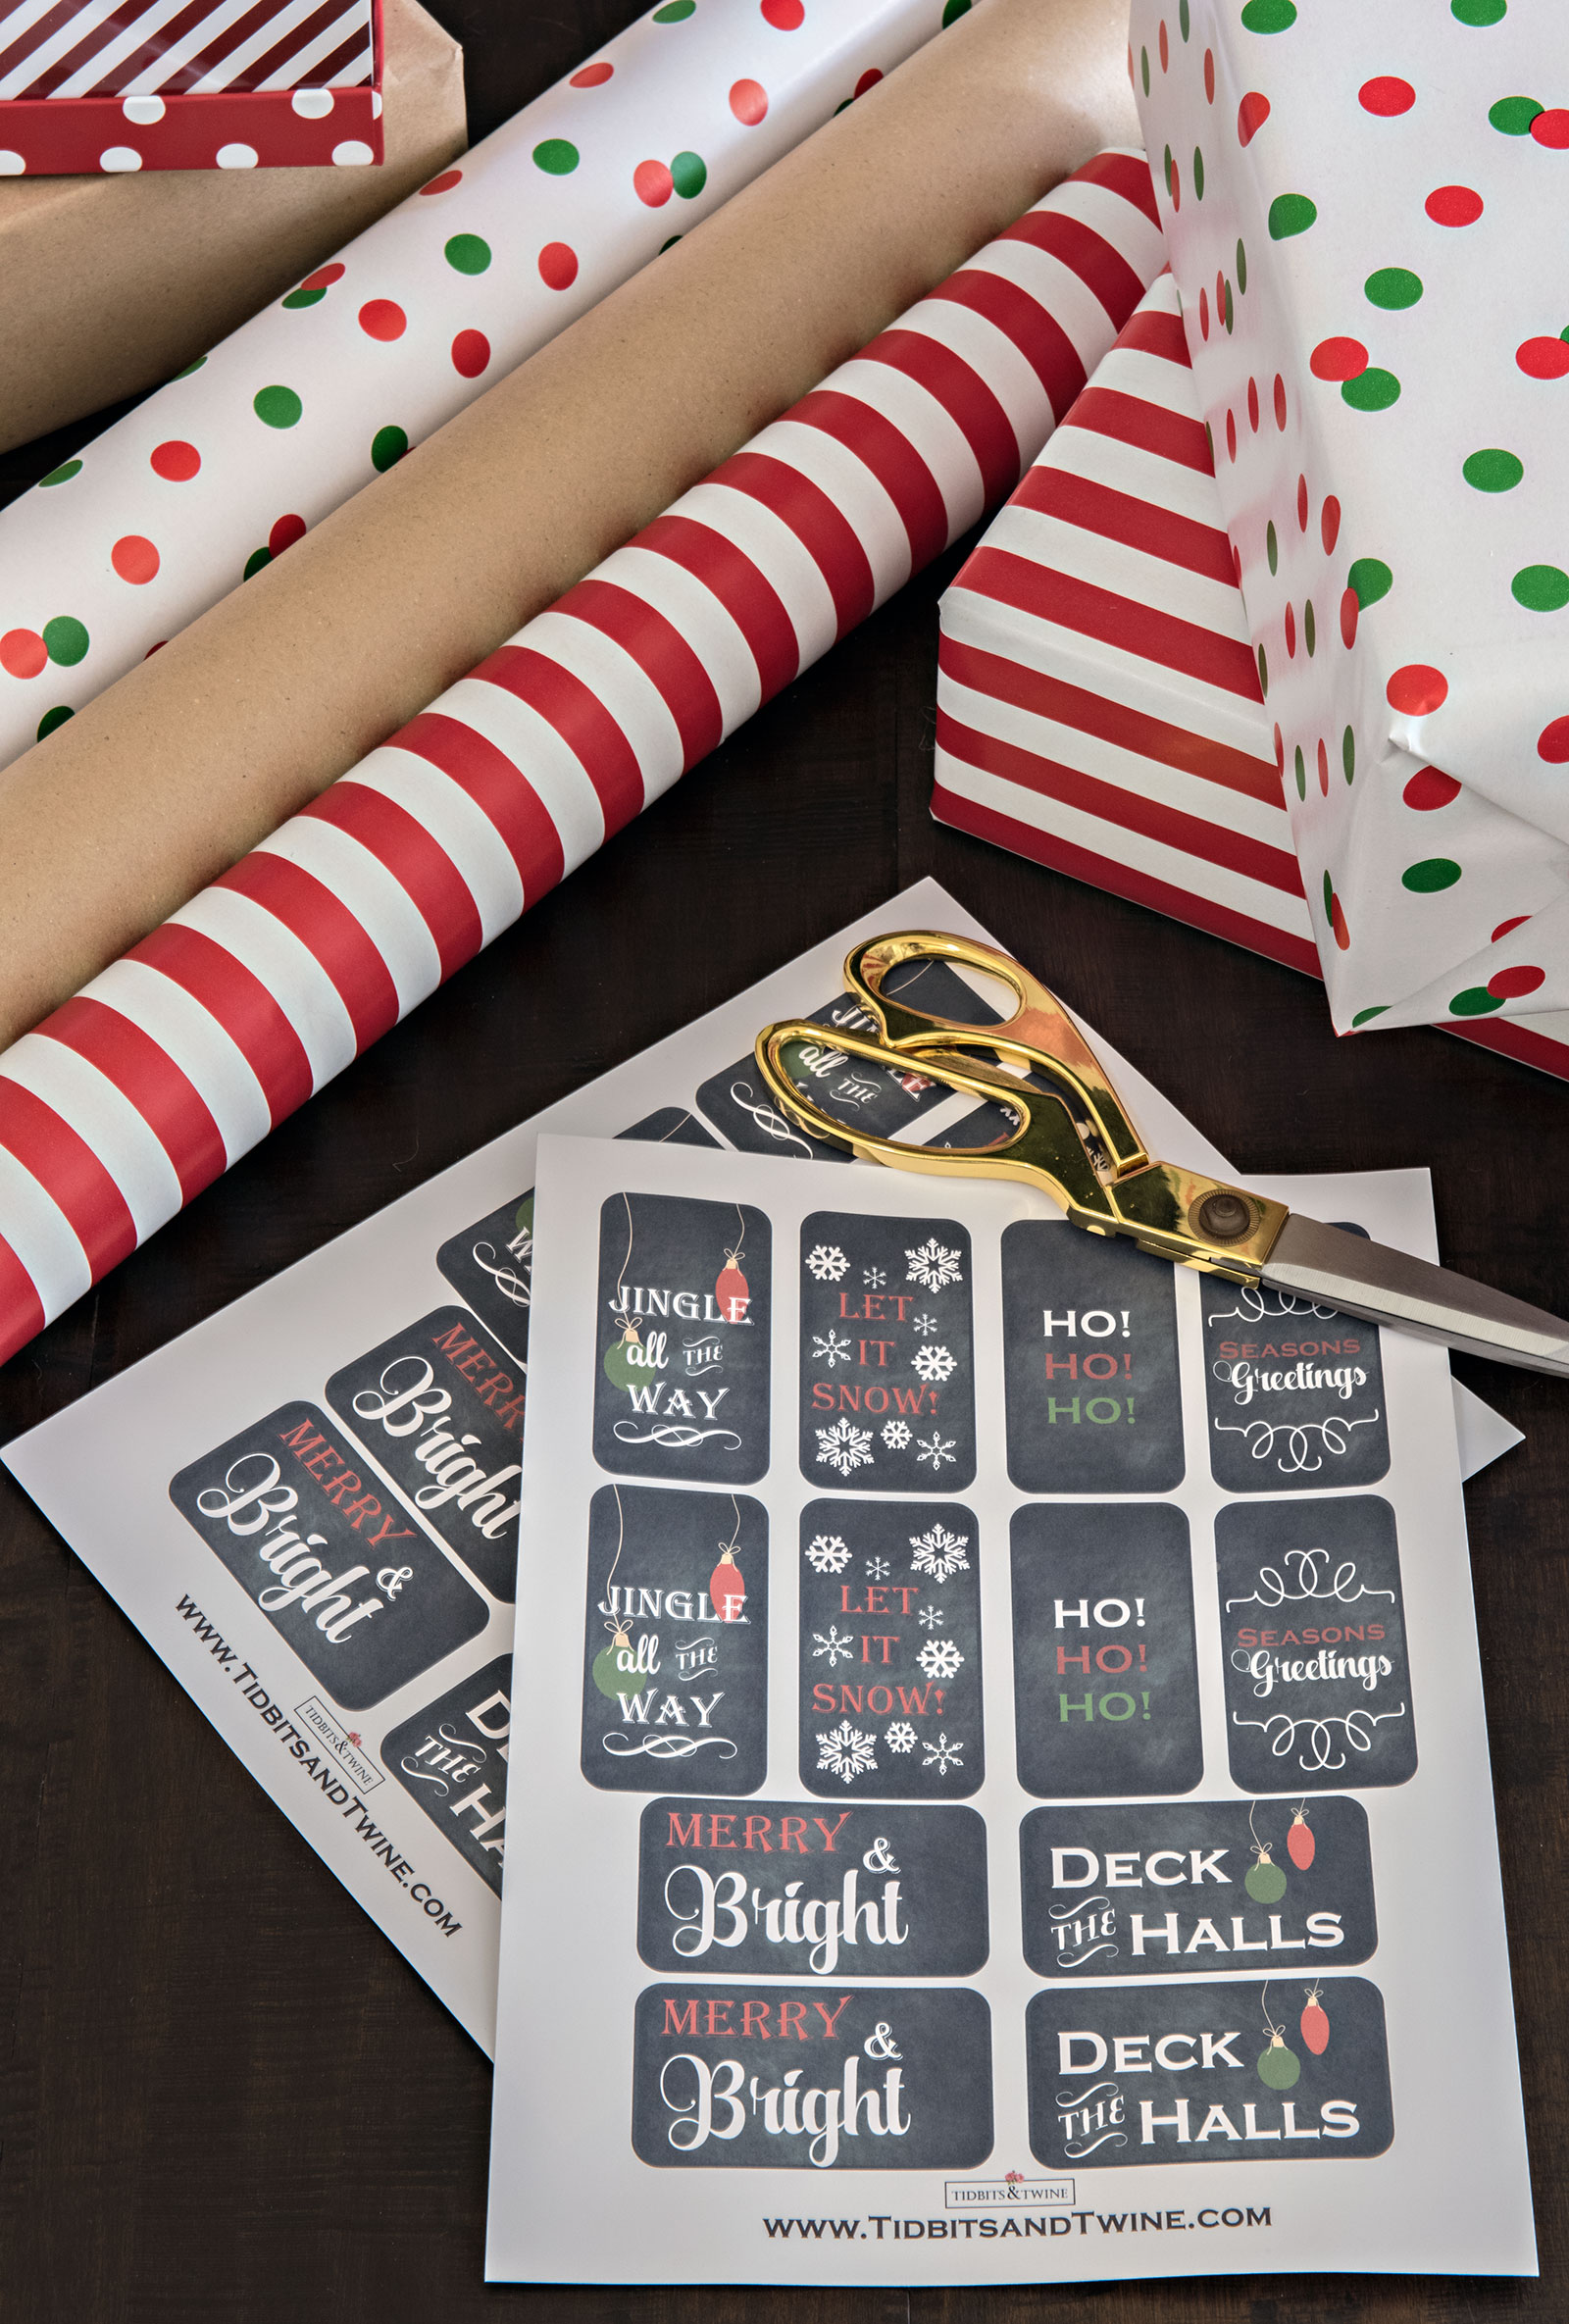 Free printable Christmas gift tags from Tidbits&Twine